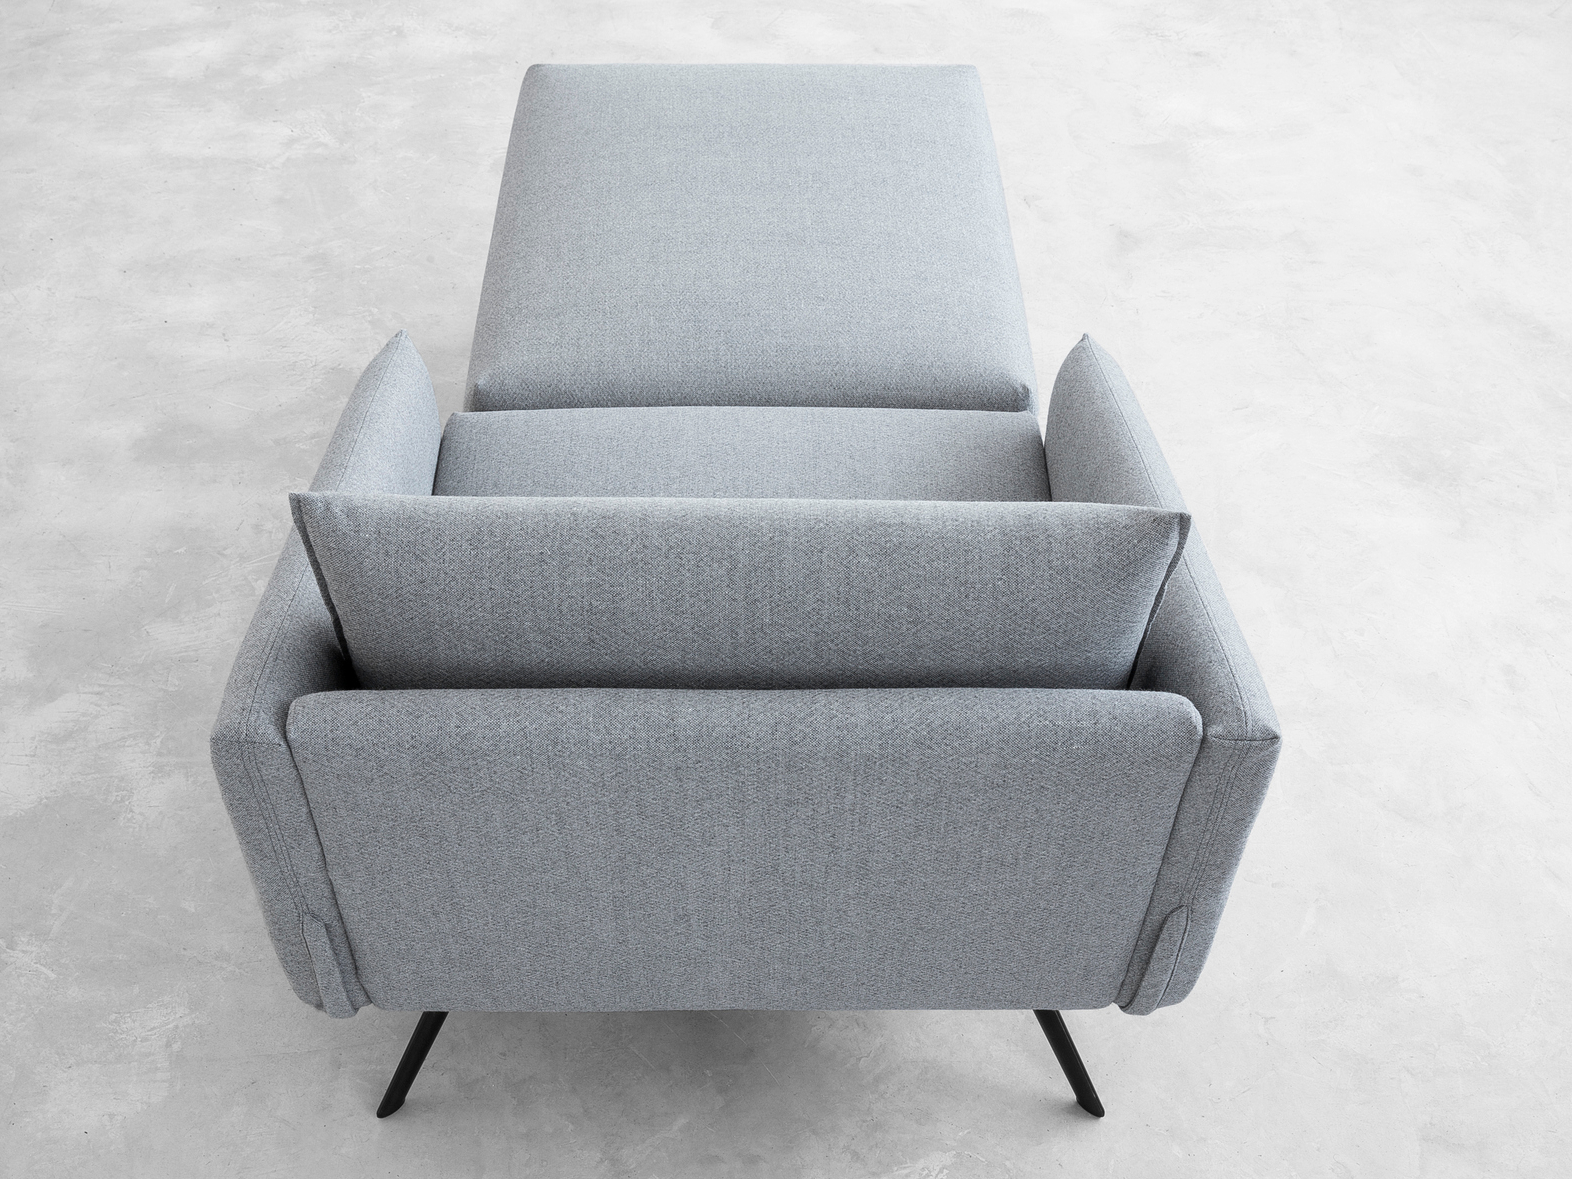 Costura Footstool Costura Collection By Stua Design Jon Gasca